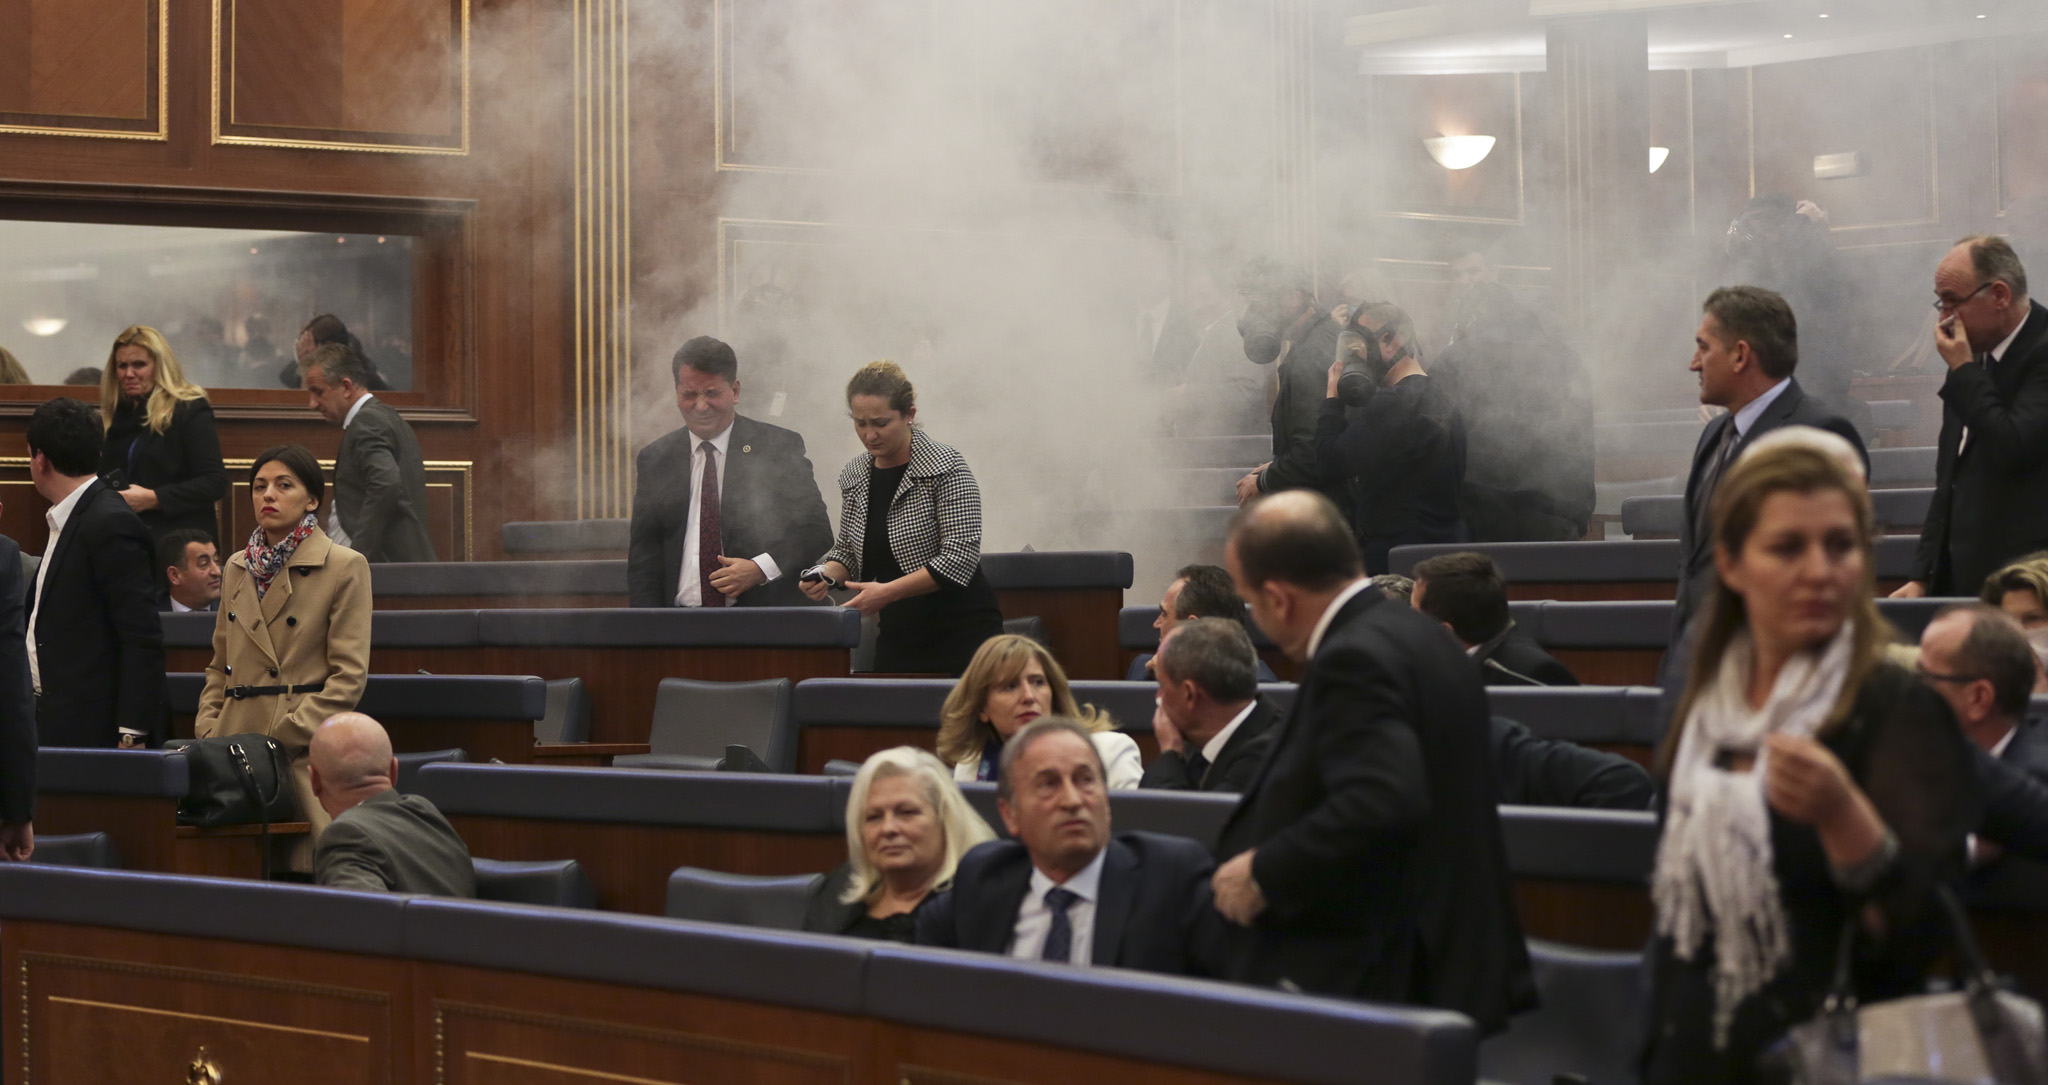 Smoke fills the auditorium of the Kosovo assembly after opposition lawmakers released tear gas canisters disrupting a parliamentary session in Kosovo capital Pristina on Friday Feb. 26, 2016. Kosovo opposition members have released tear gas inside Parliament as the lawmakers were readying to vote on wether to elect Hashim Thaci , foreign minister and former guerrilla leader, as the next president. (AP Photo/Visar Kryeziu).